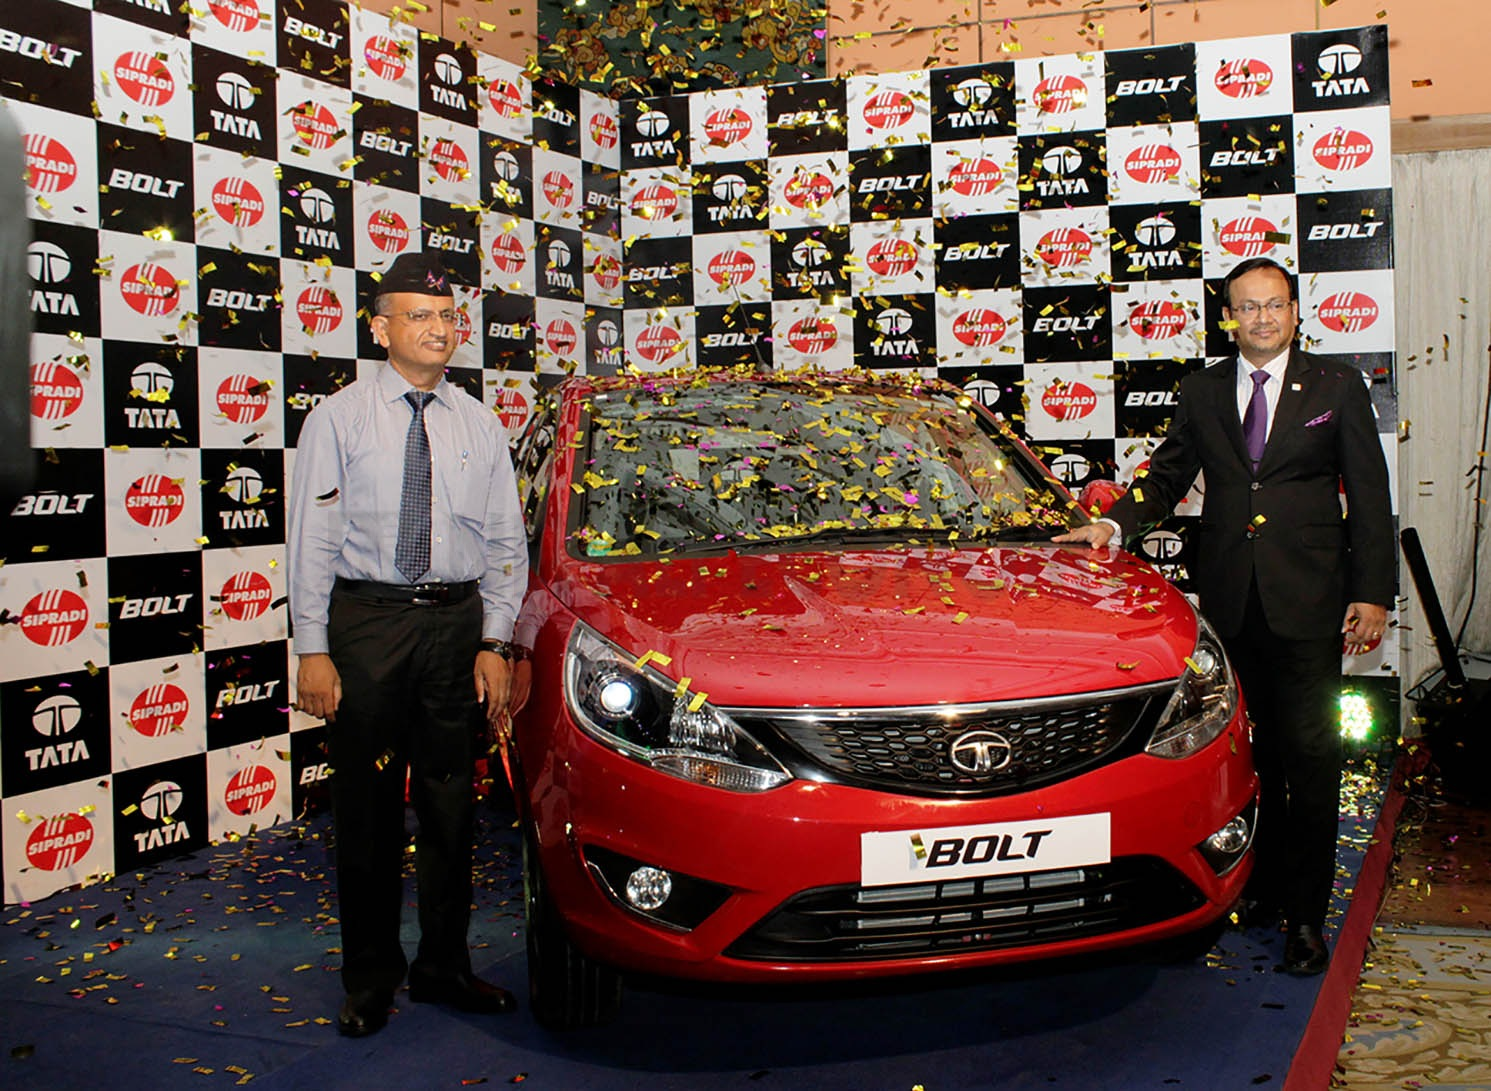 All-new sporty hatchback BOLT from Tata Motors launched